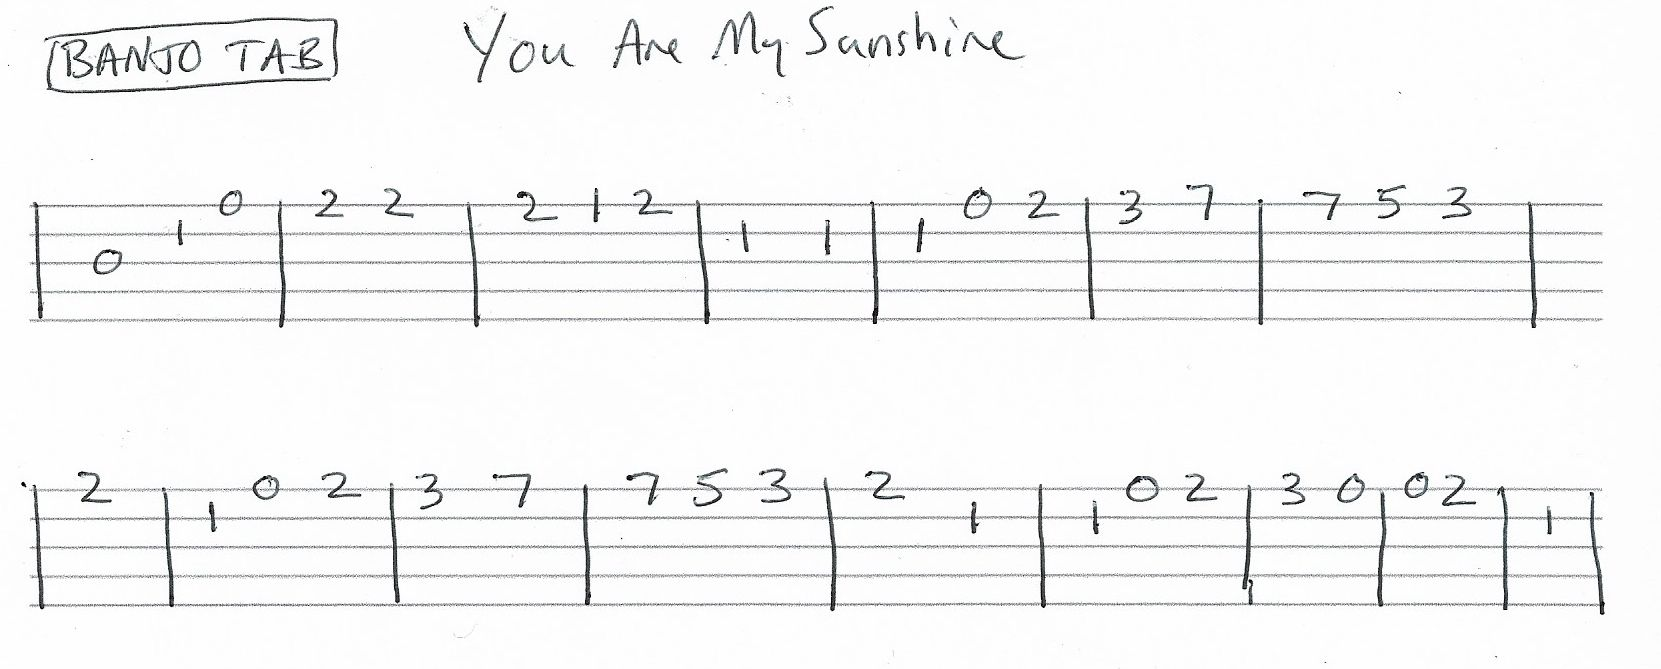 You Are My Sunshine Banjo Tab Vocal Melody In C With Images